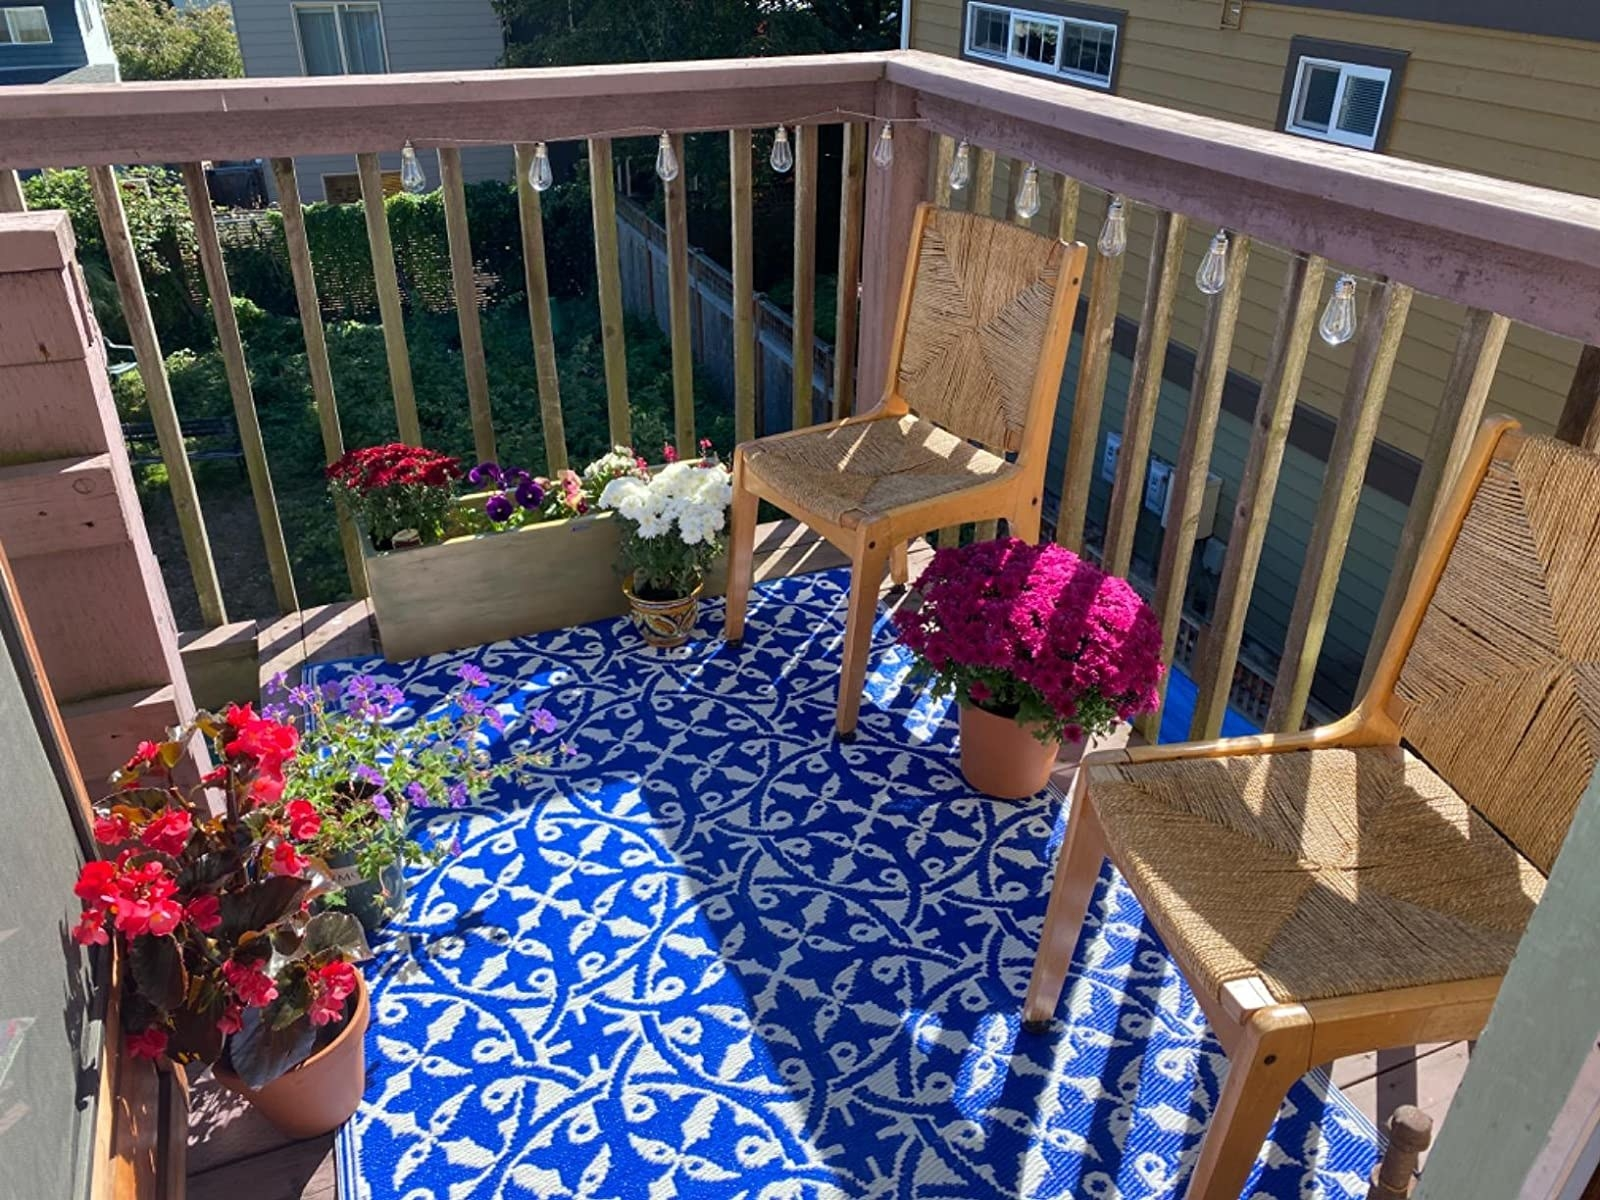 blue and white patterned rug on reviewer's balcony